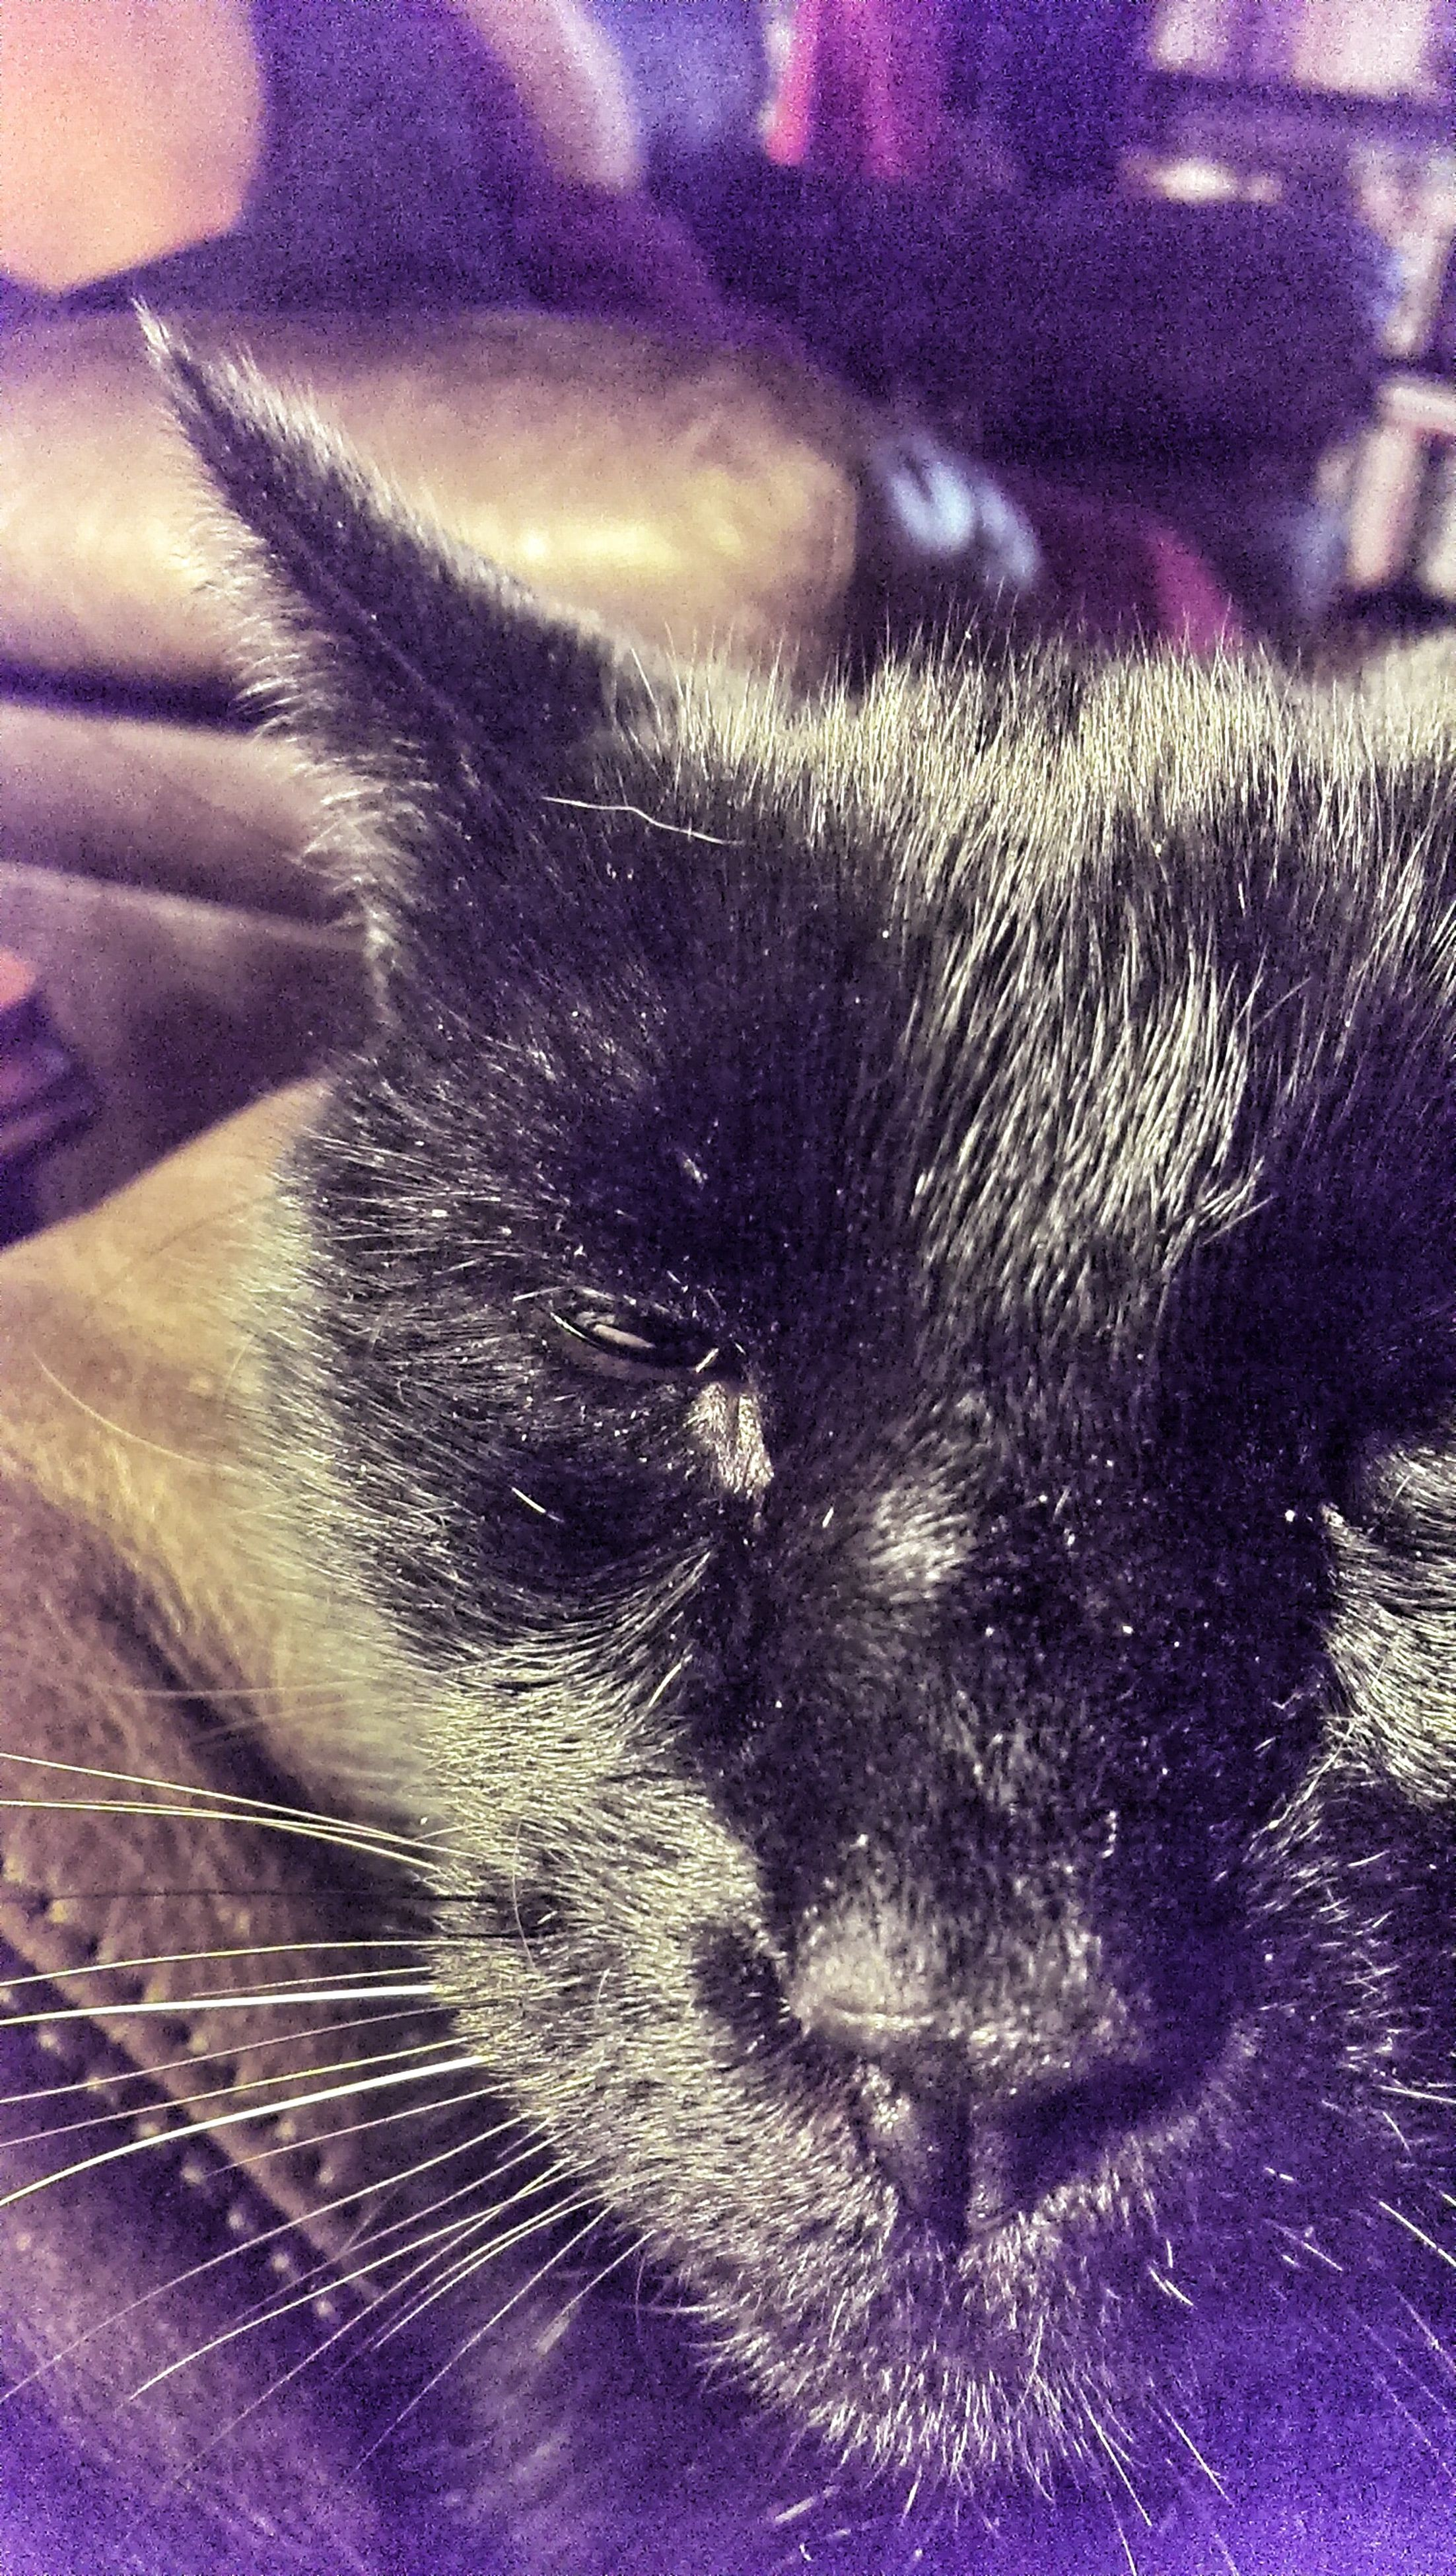 one animal, animal themes, pets, domestic cat, cat, domestic animals, close-up, indoors, whisker, mammal, feline, extreme close-up, selective focus, high angle view, full frame, detail, no people, backgrounds, part of, sleeping